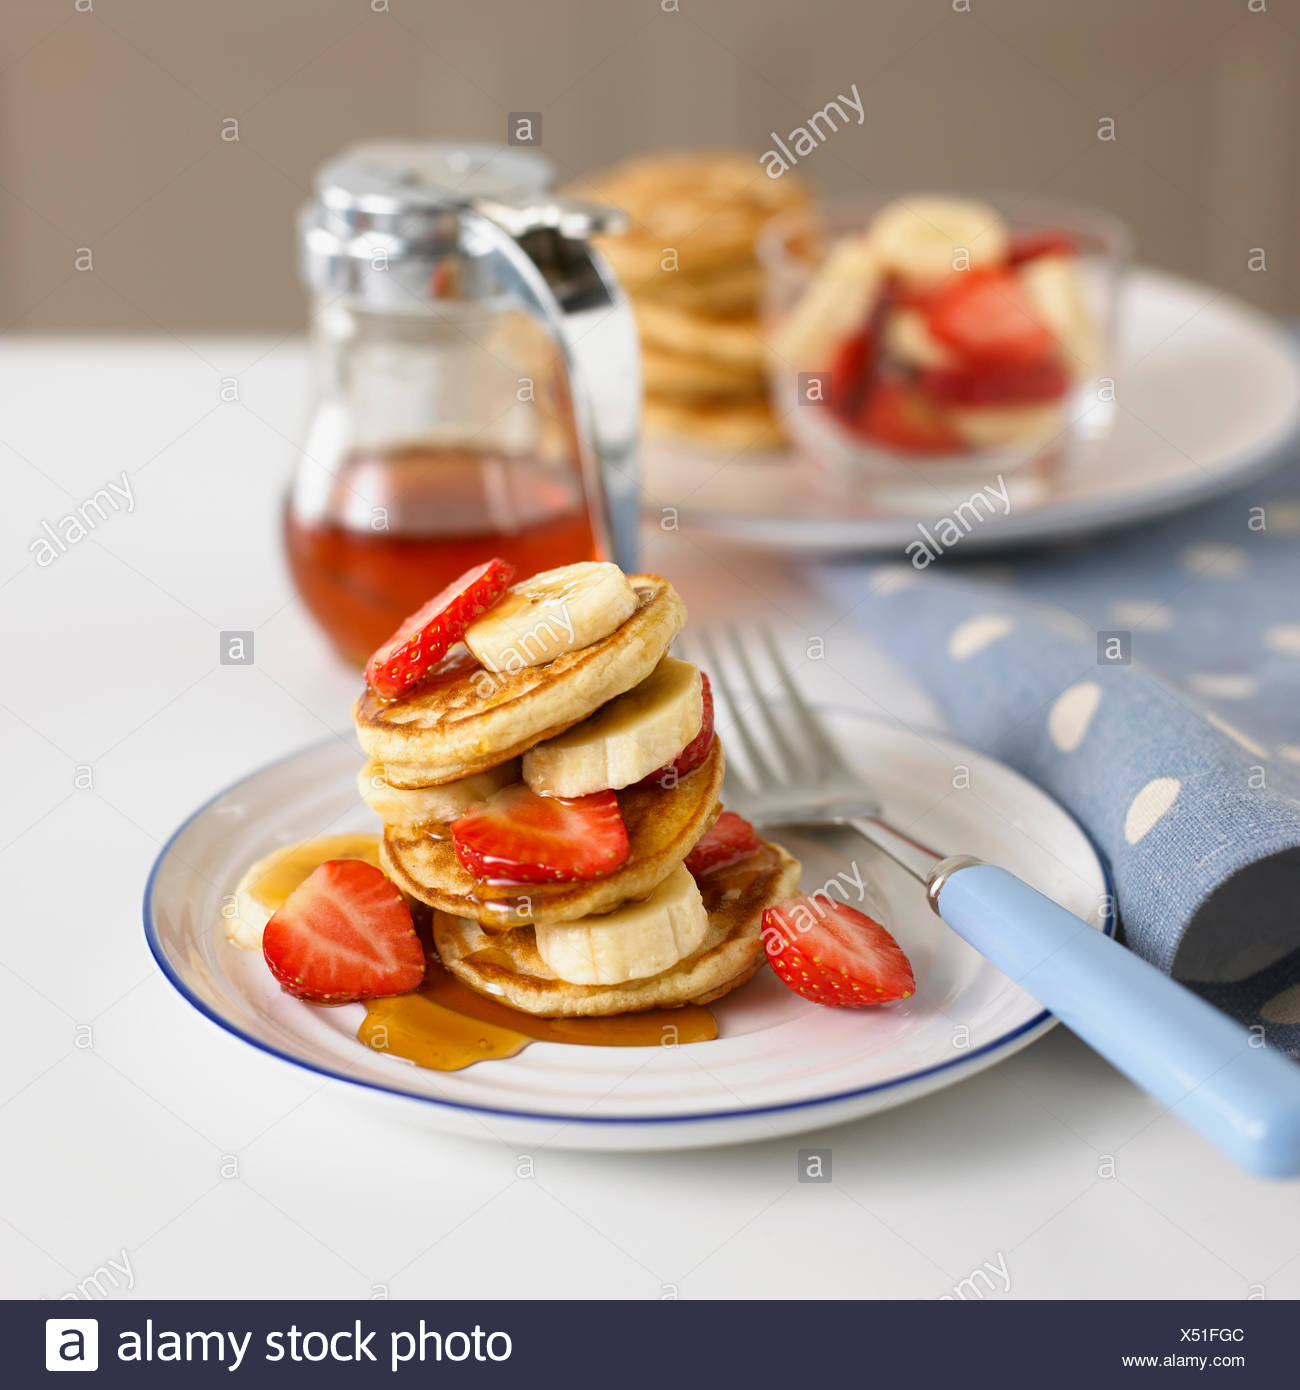 Plate of fruit and pancakes - Stock Image